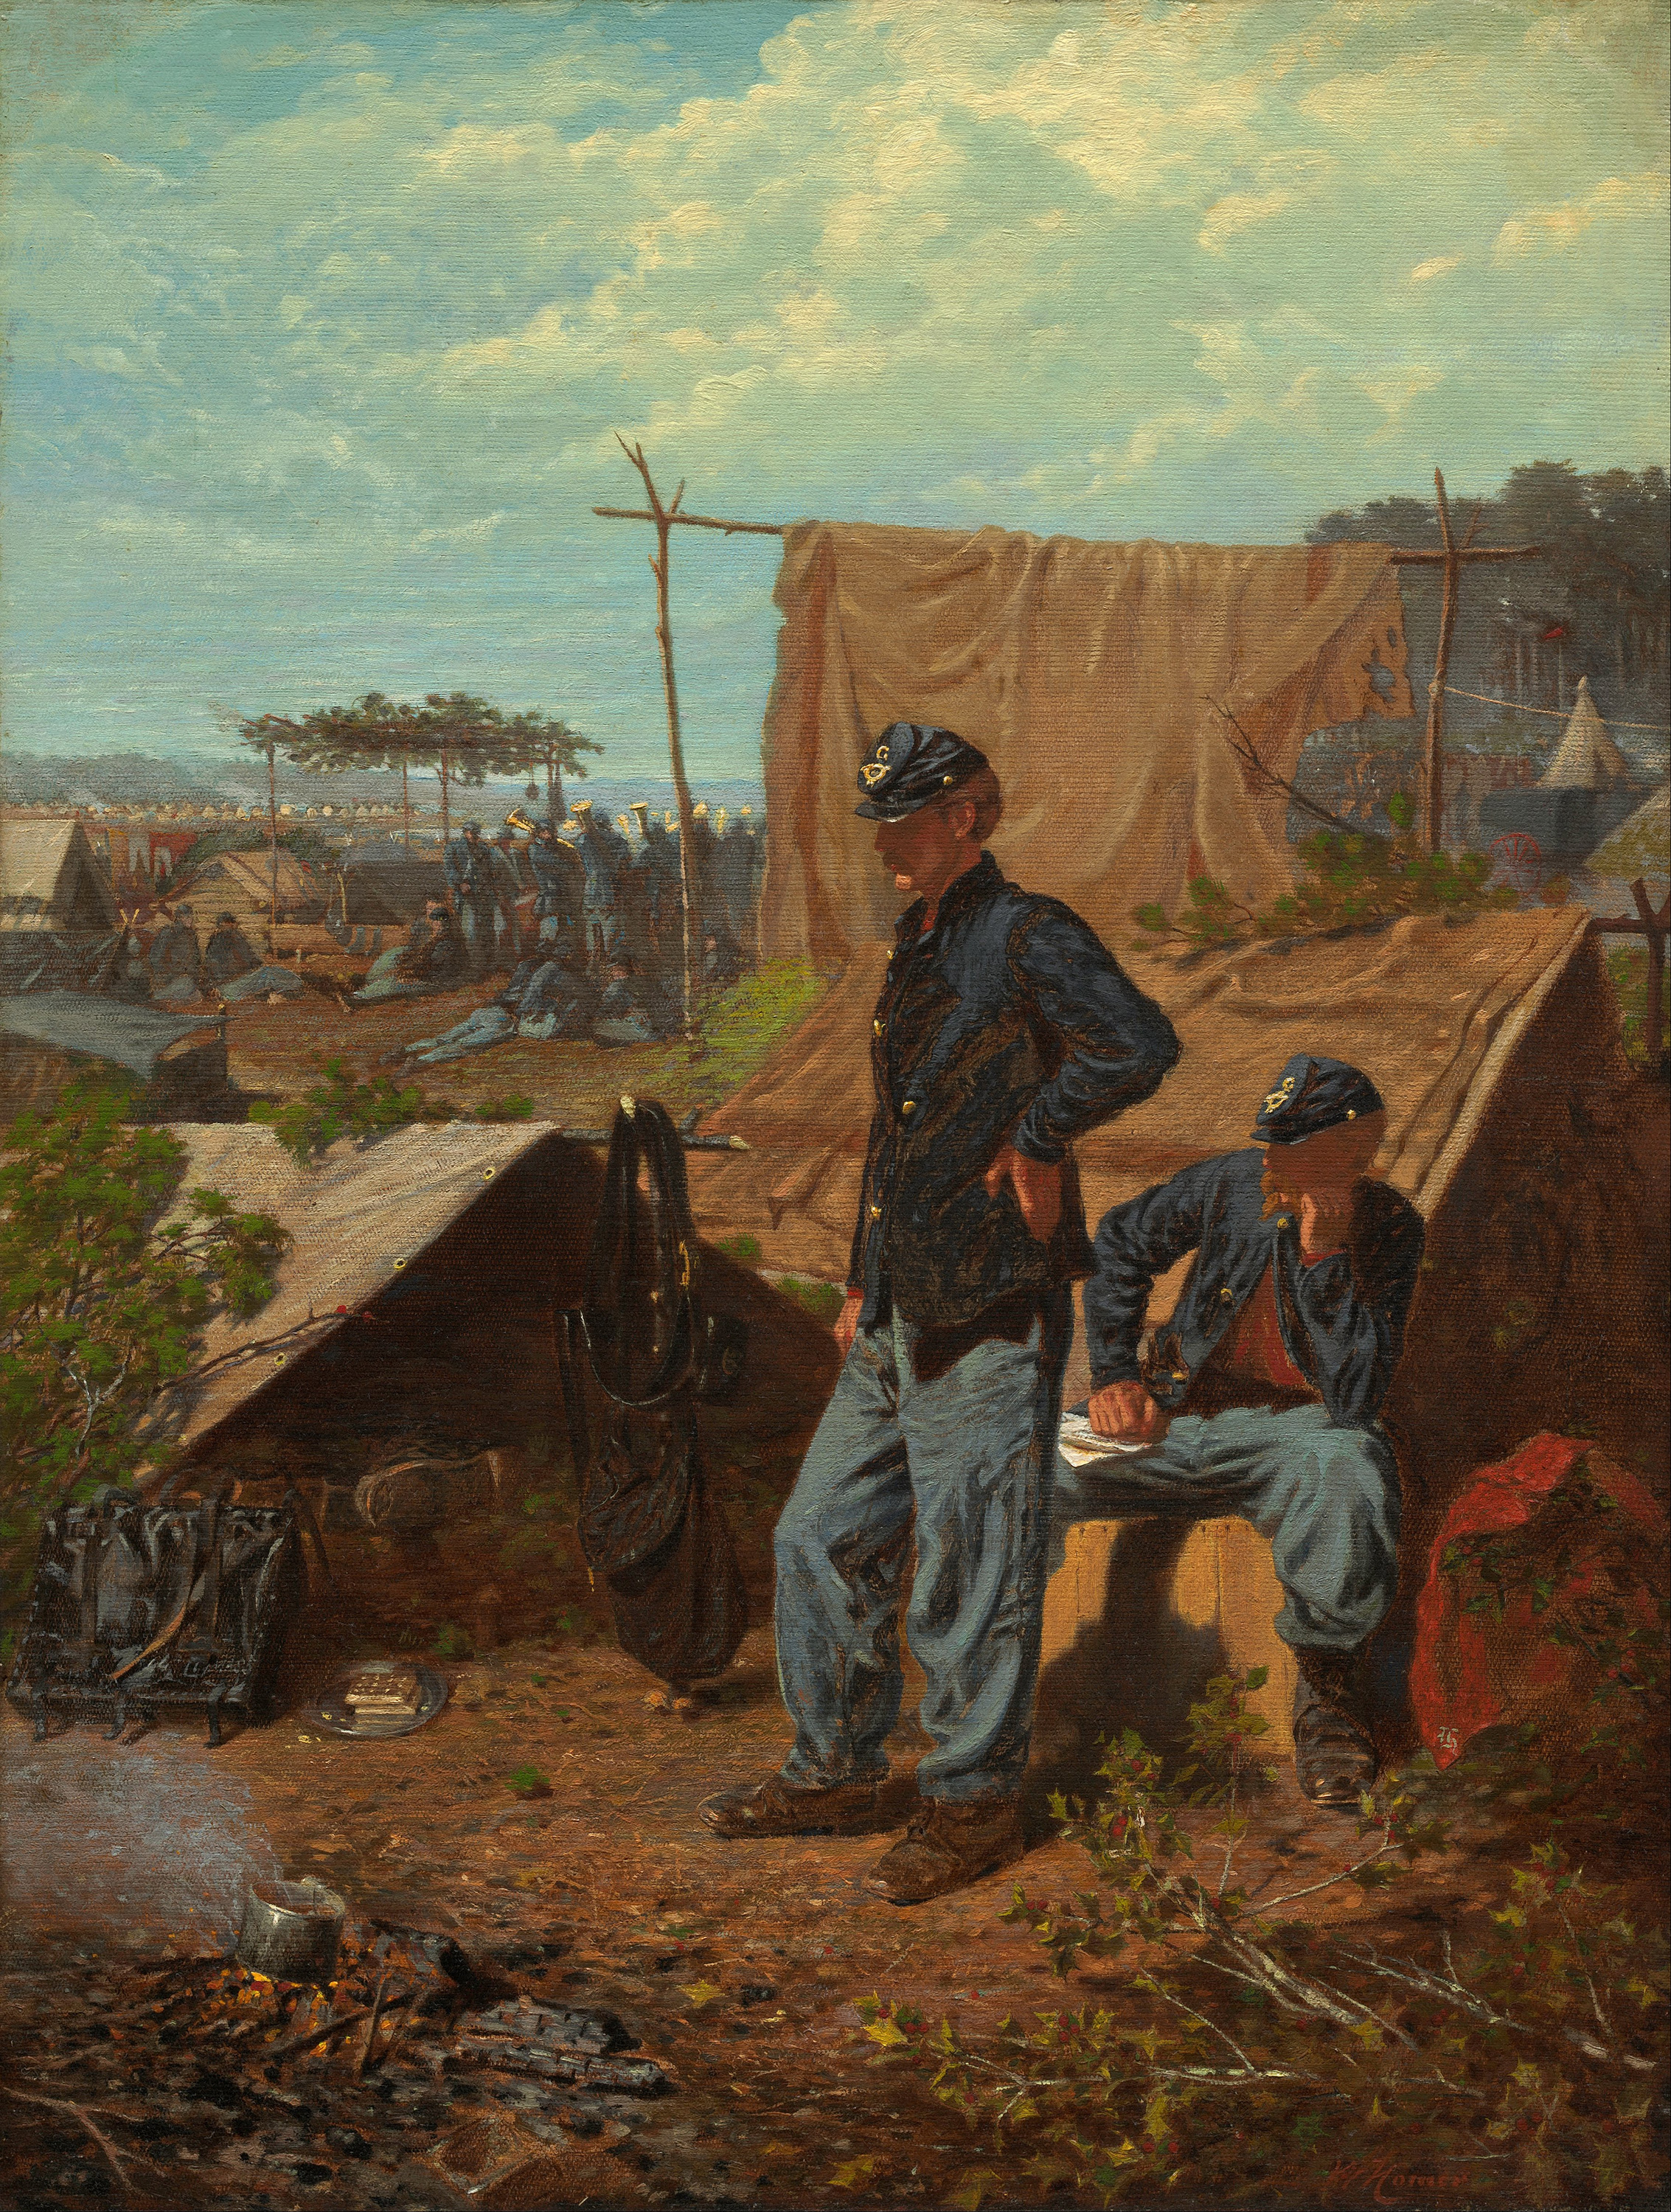 Home, Sweet Home, 1863 — Winslow Homer, National Gallery of Art